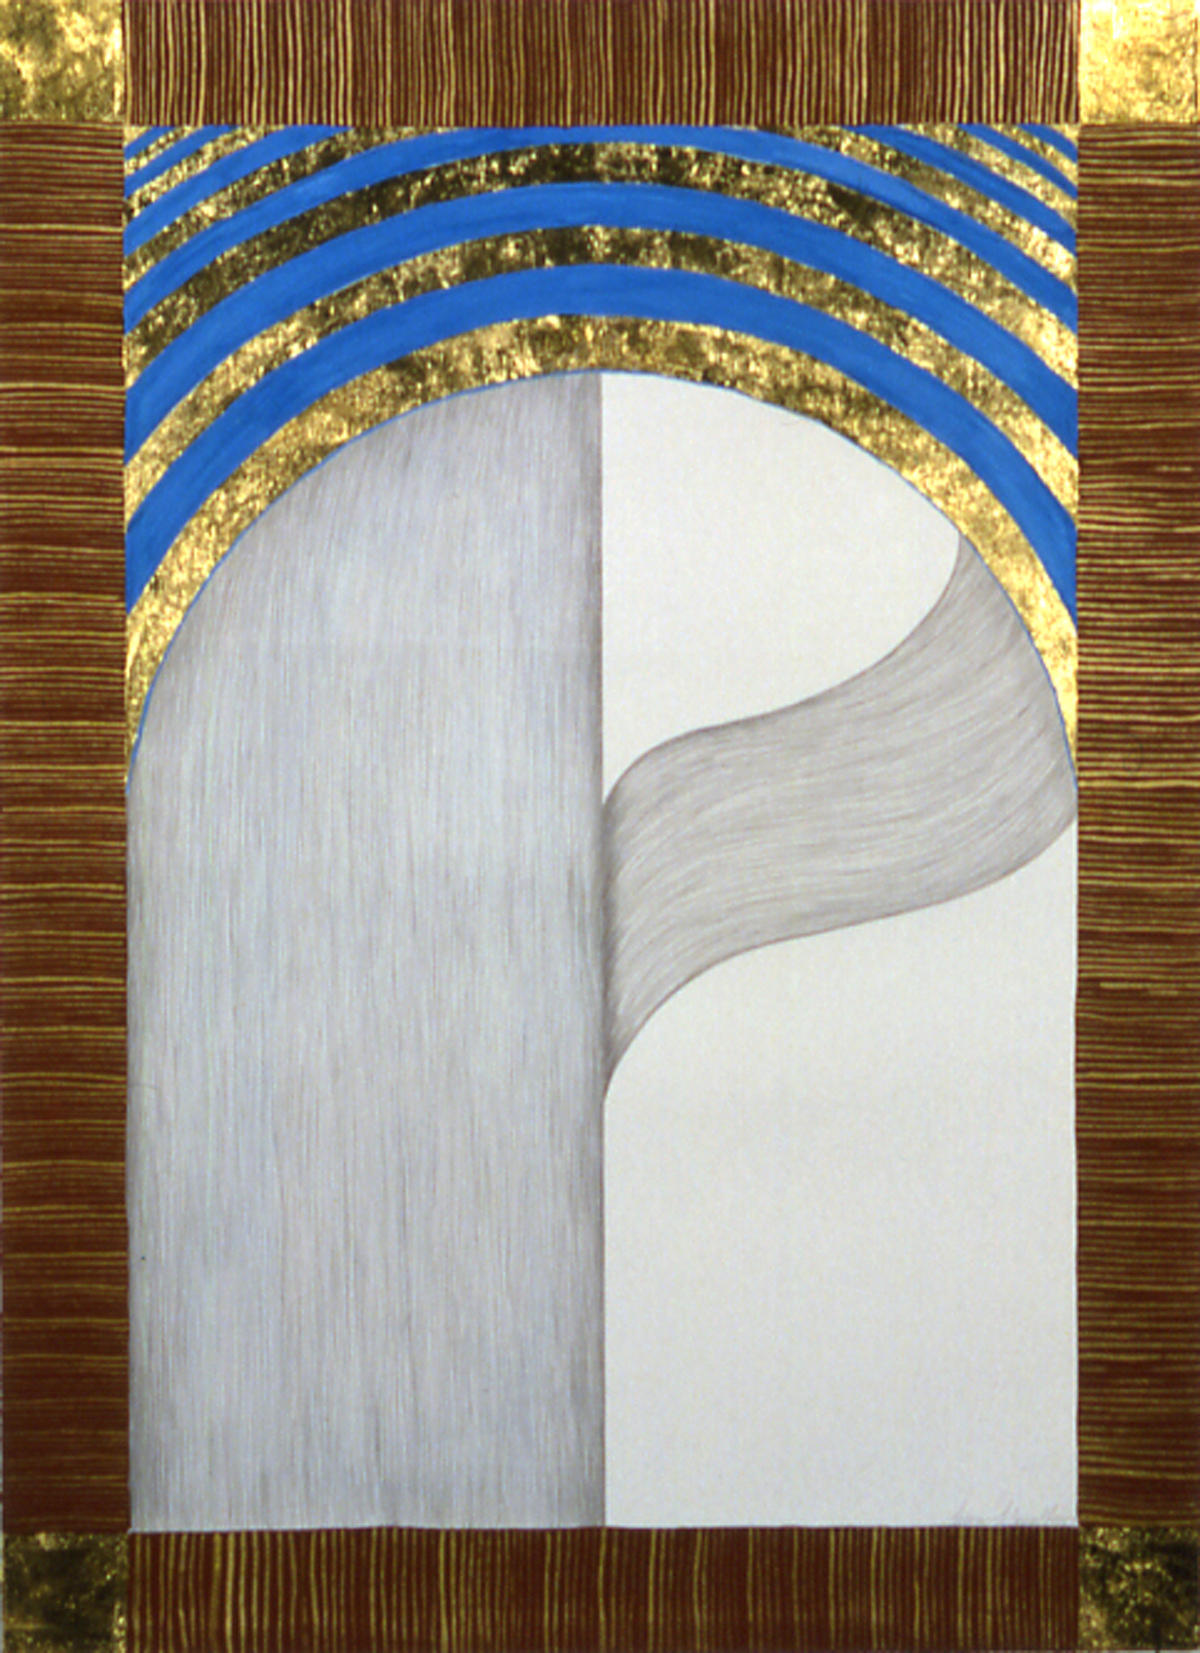 Creation XI (1987), silverpoint, gold leaf, acrylic on paper by Susan Schwalb